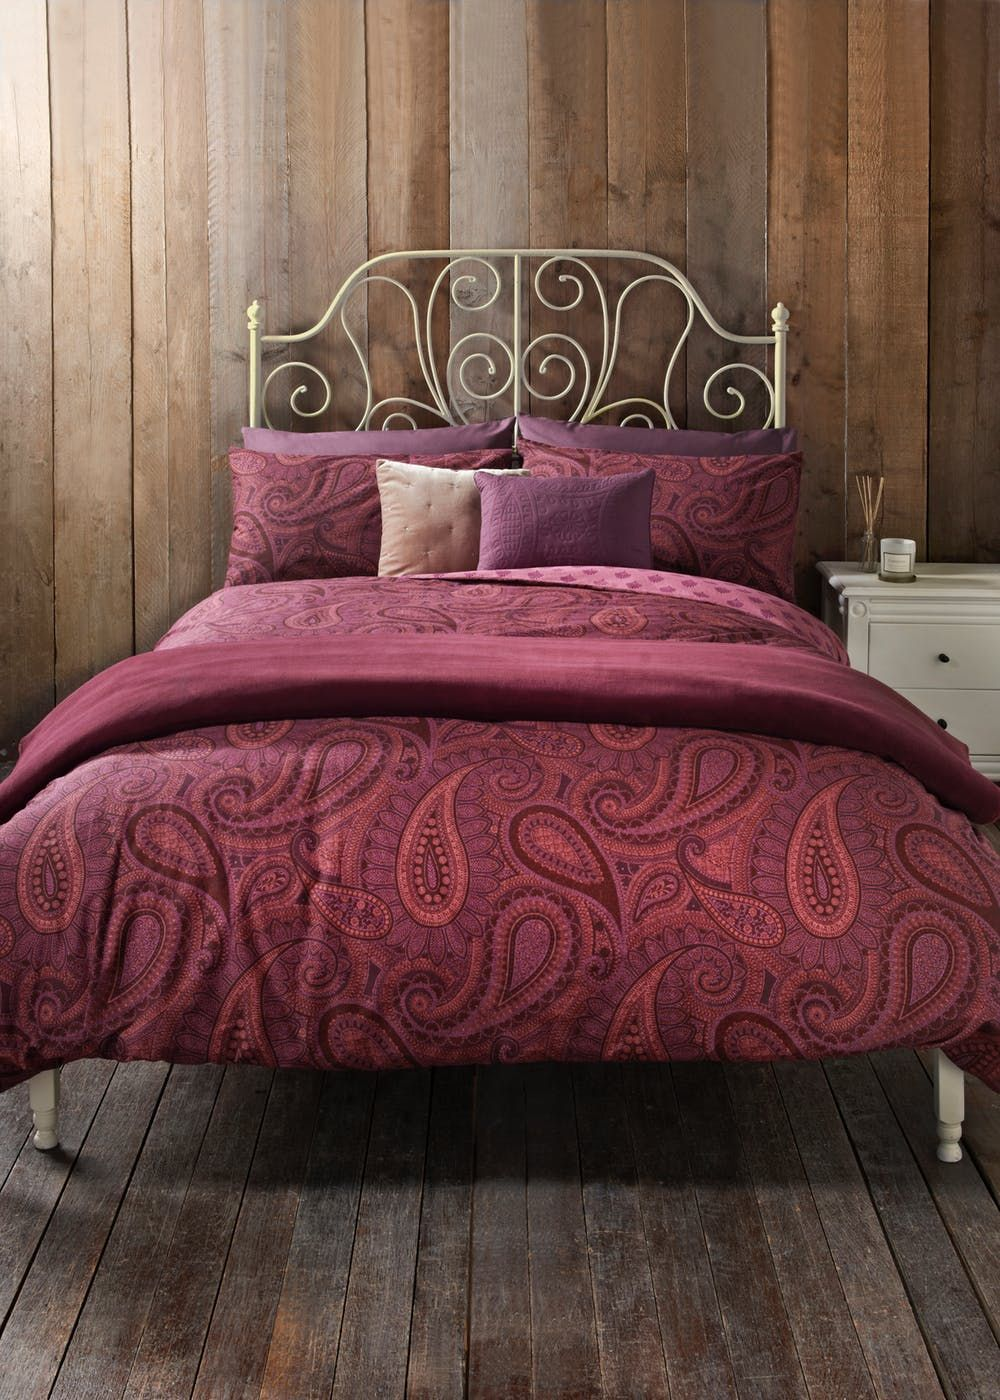 ranges homeware womens bedrooms cover and cotton duvet kids online pin mens floral covers